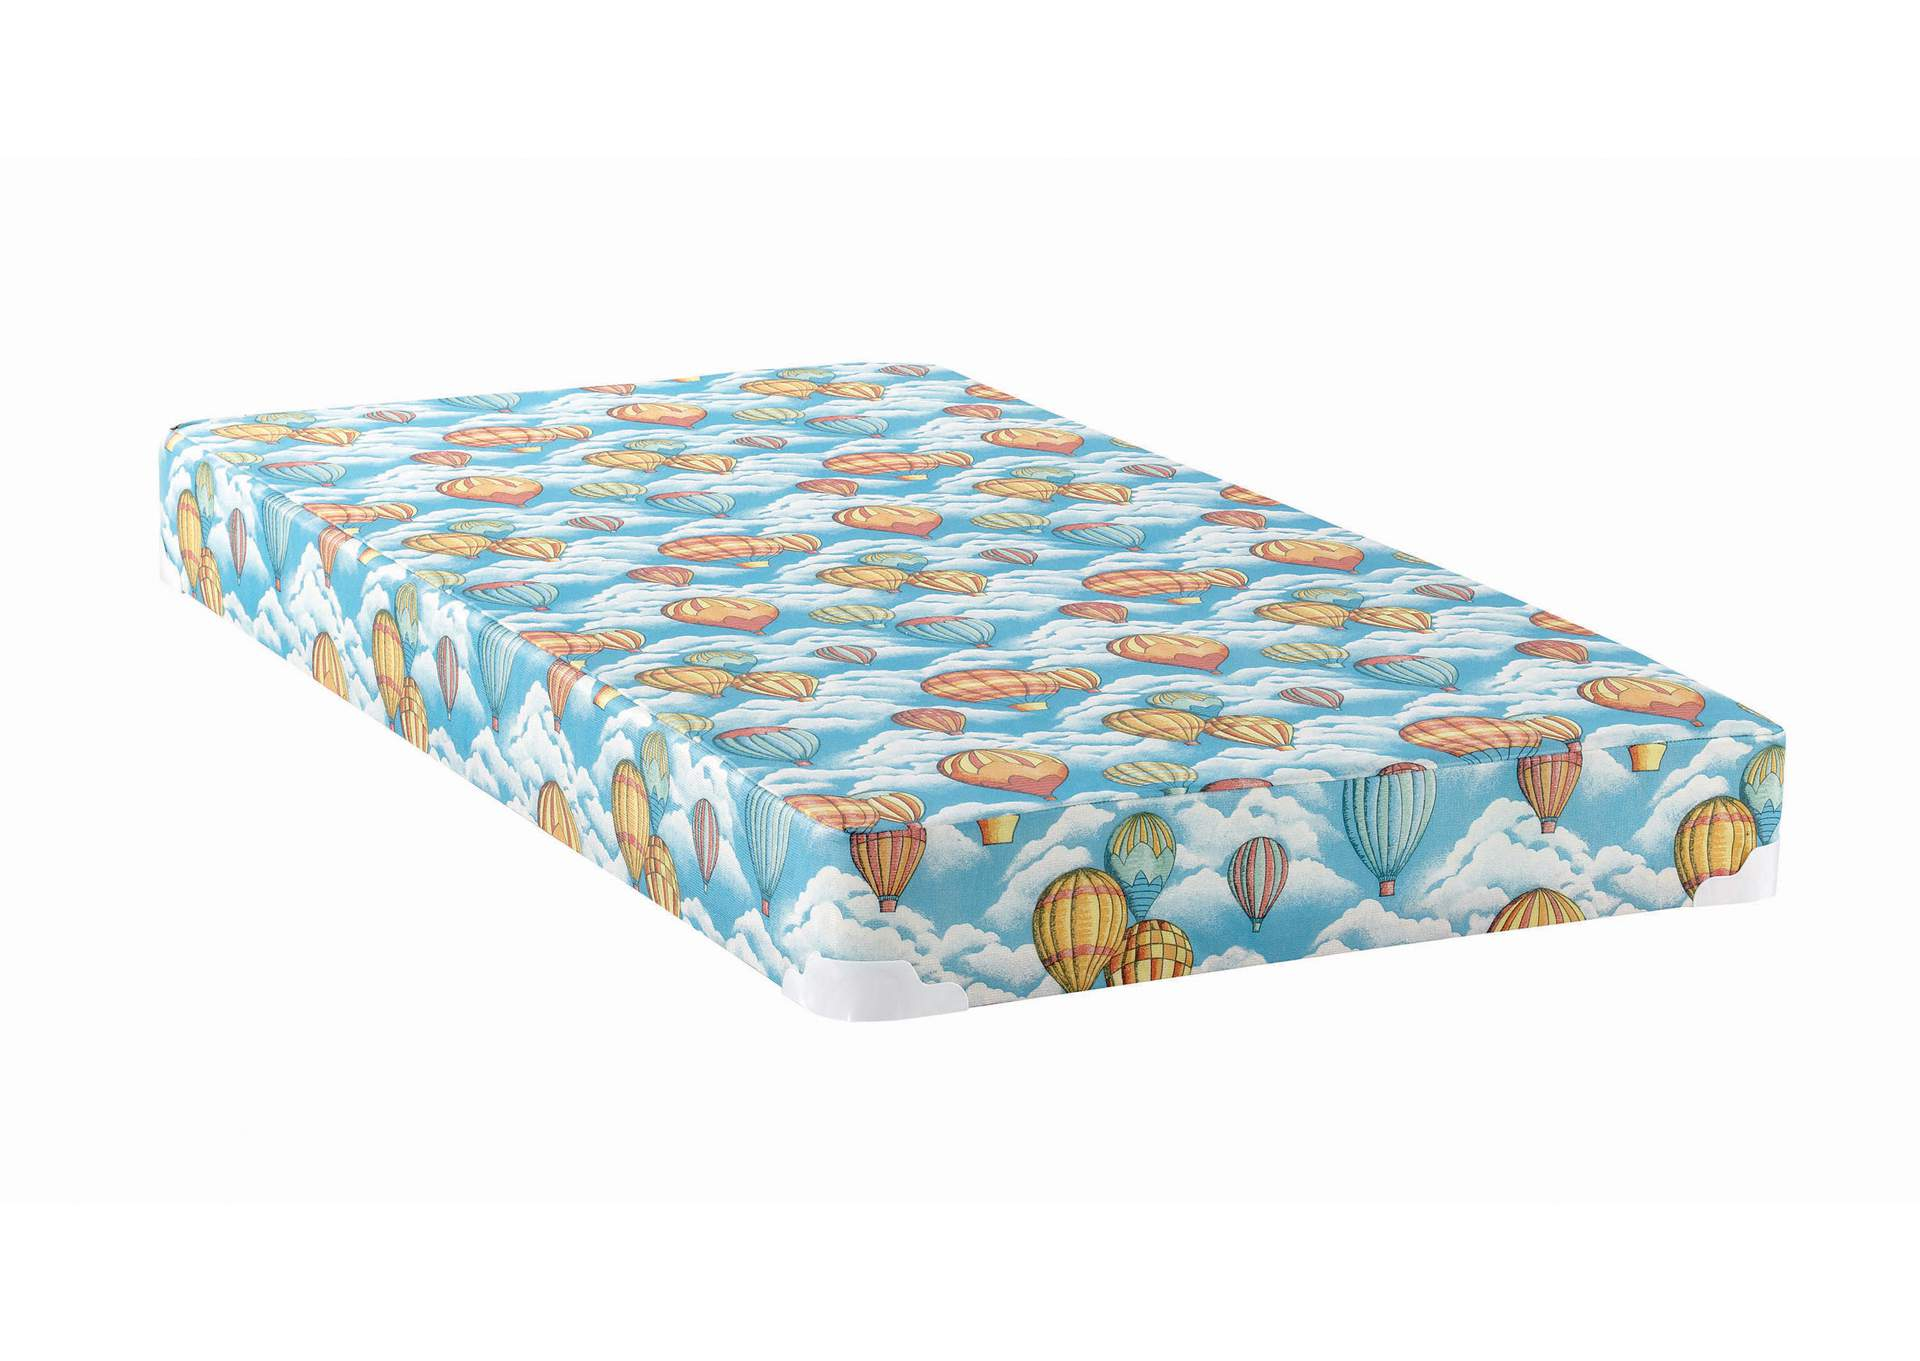 Botticelli Balloon Blue Patterned Twin Mattress,Coaster Furniture